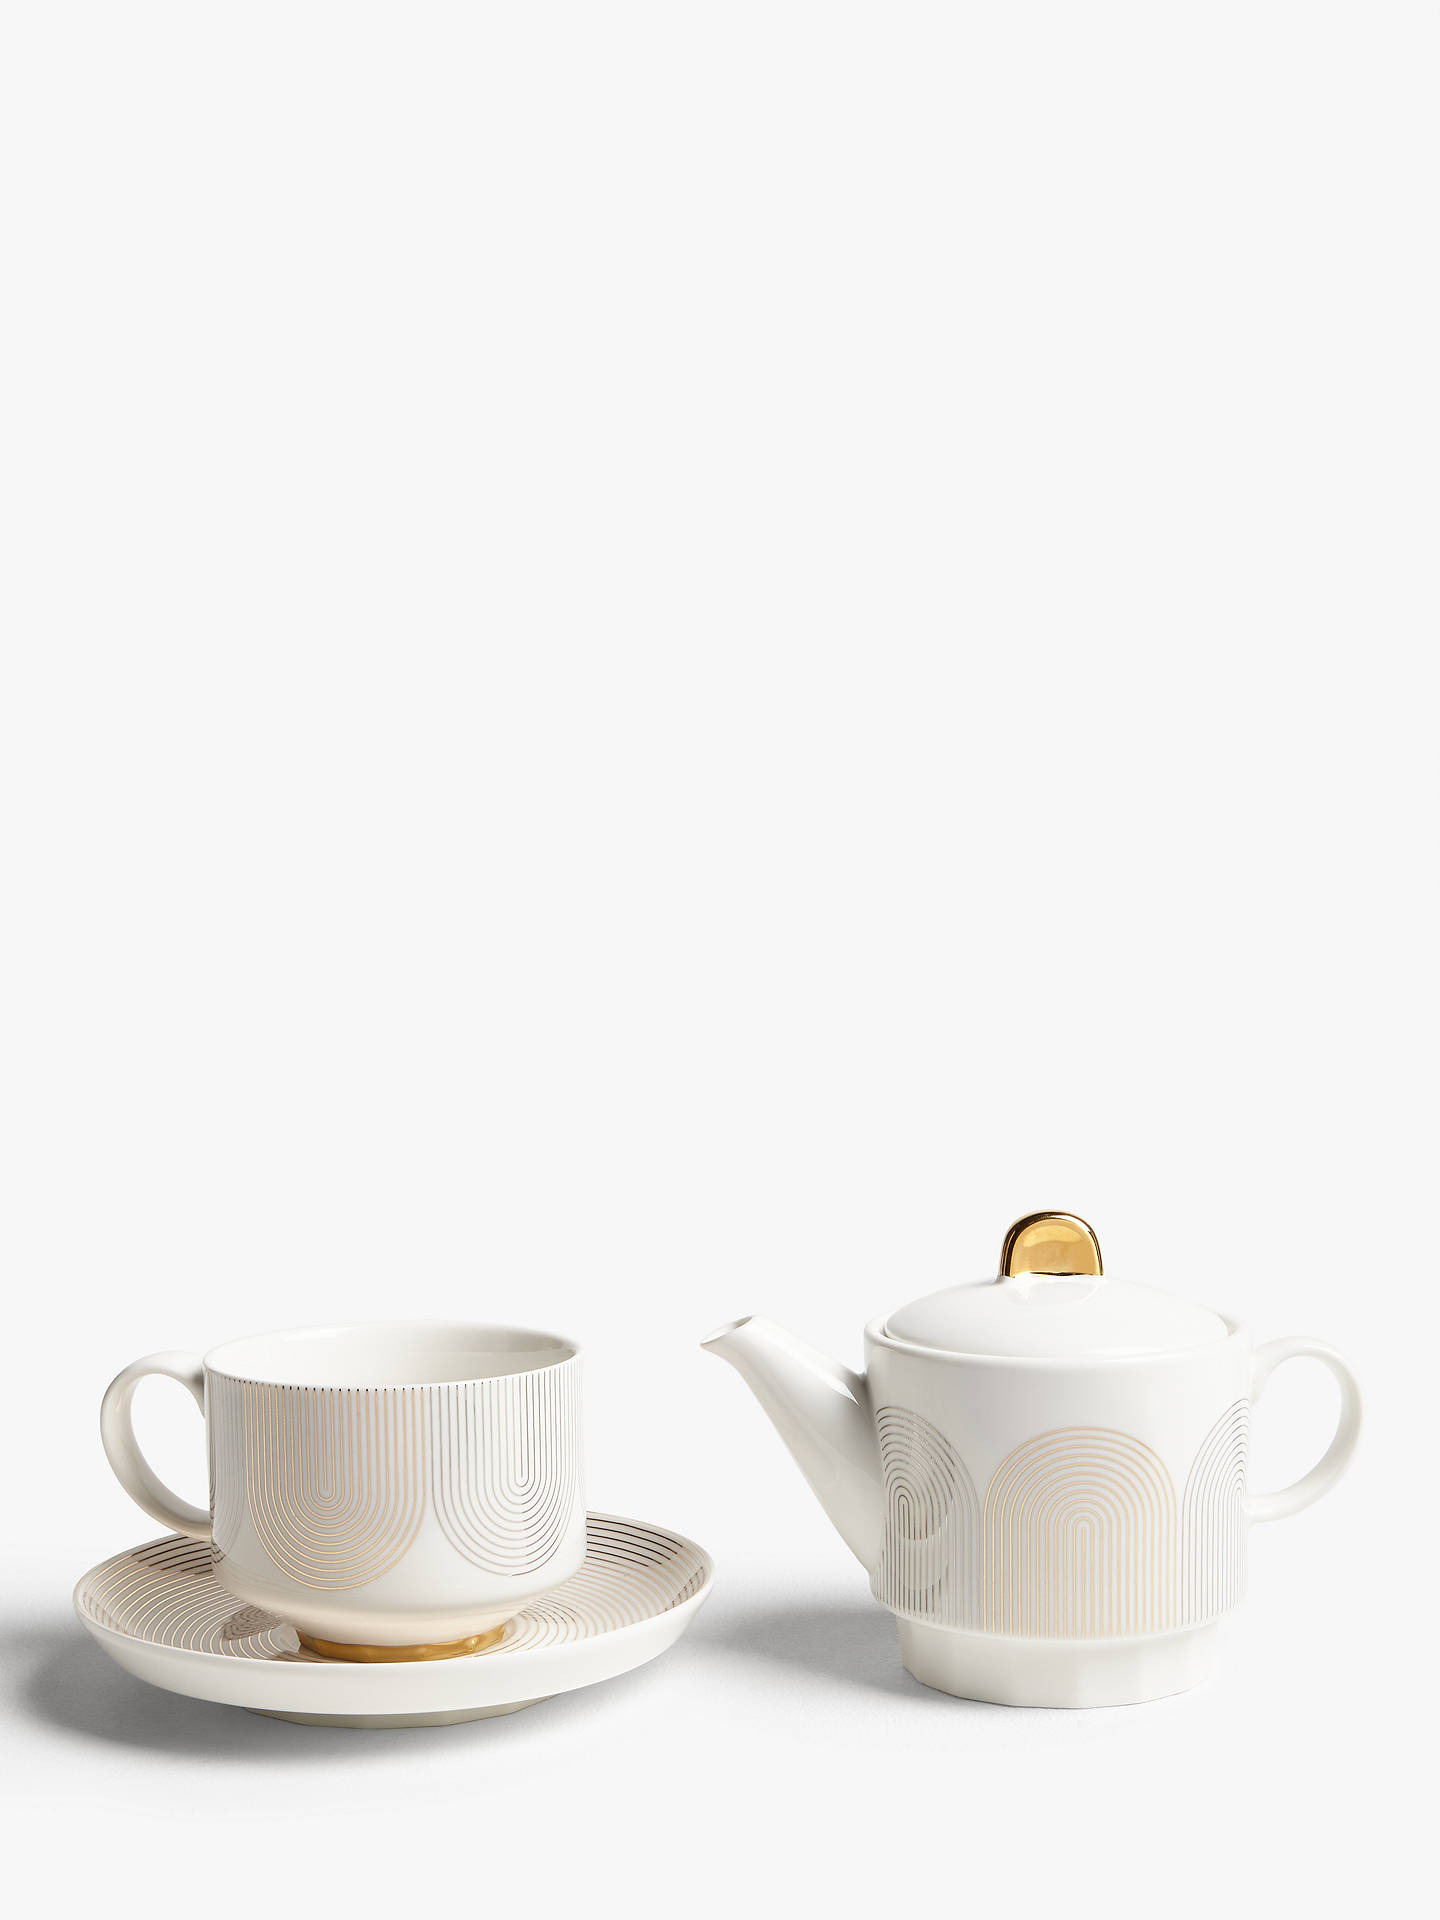 John Lewis & Partners Fine China Tea For One Teapot, Cup & Saucer, Gold/White, 330ml by John Lewis & Partners